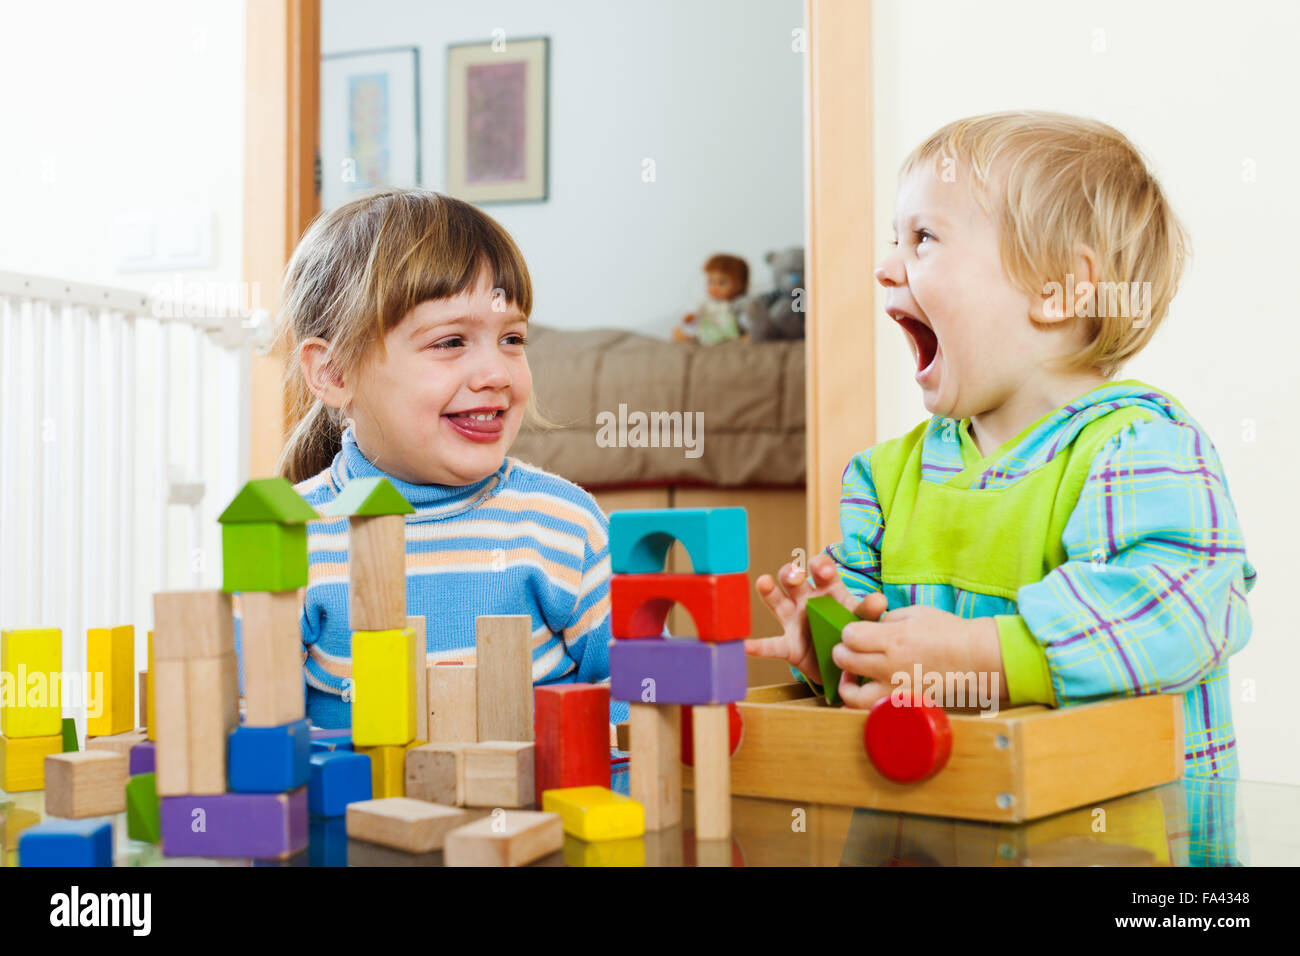 Toys For Siblings : Emotional happy siblings playing with wooden toys in home